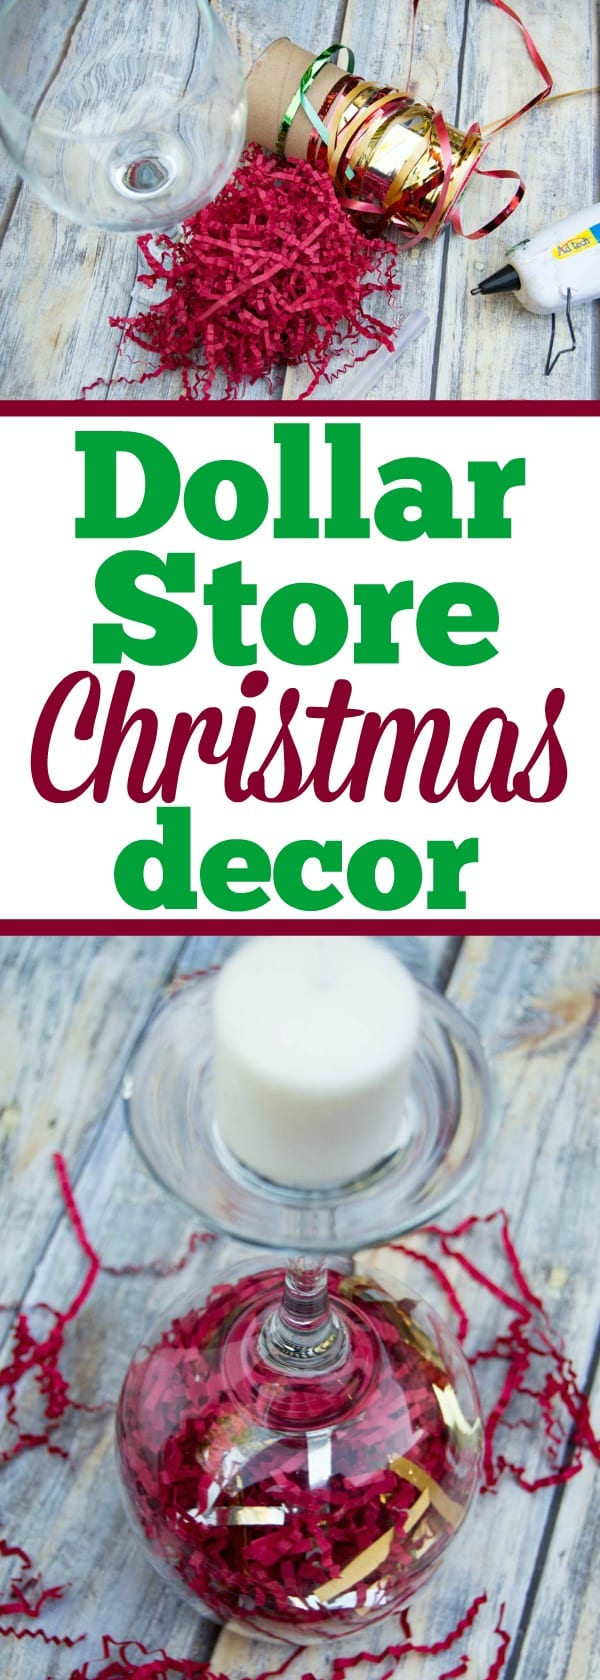 My favorite Dollar Store Christmas decorations that are cheap and easy to make and a great craft for kids too. Do it yourself holiday home decor for less.